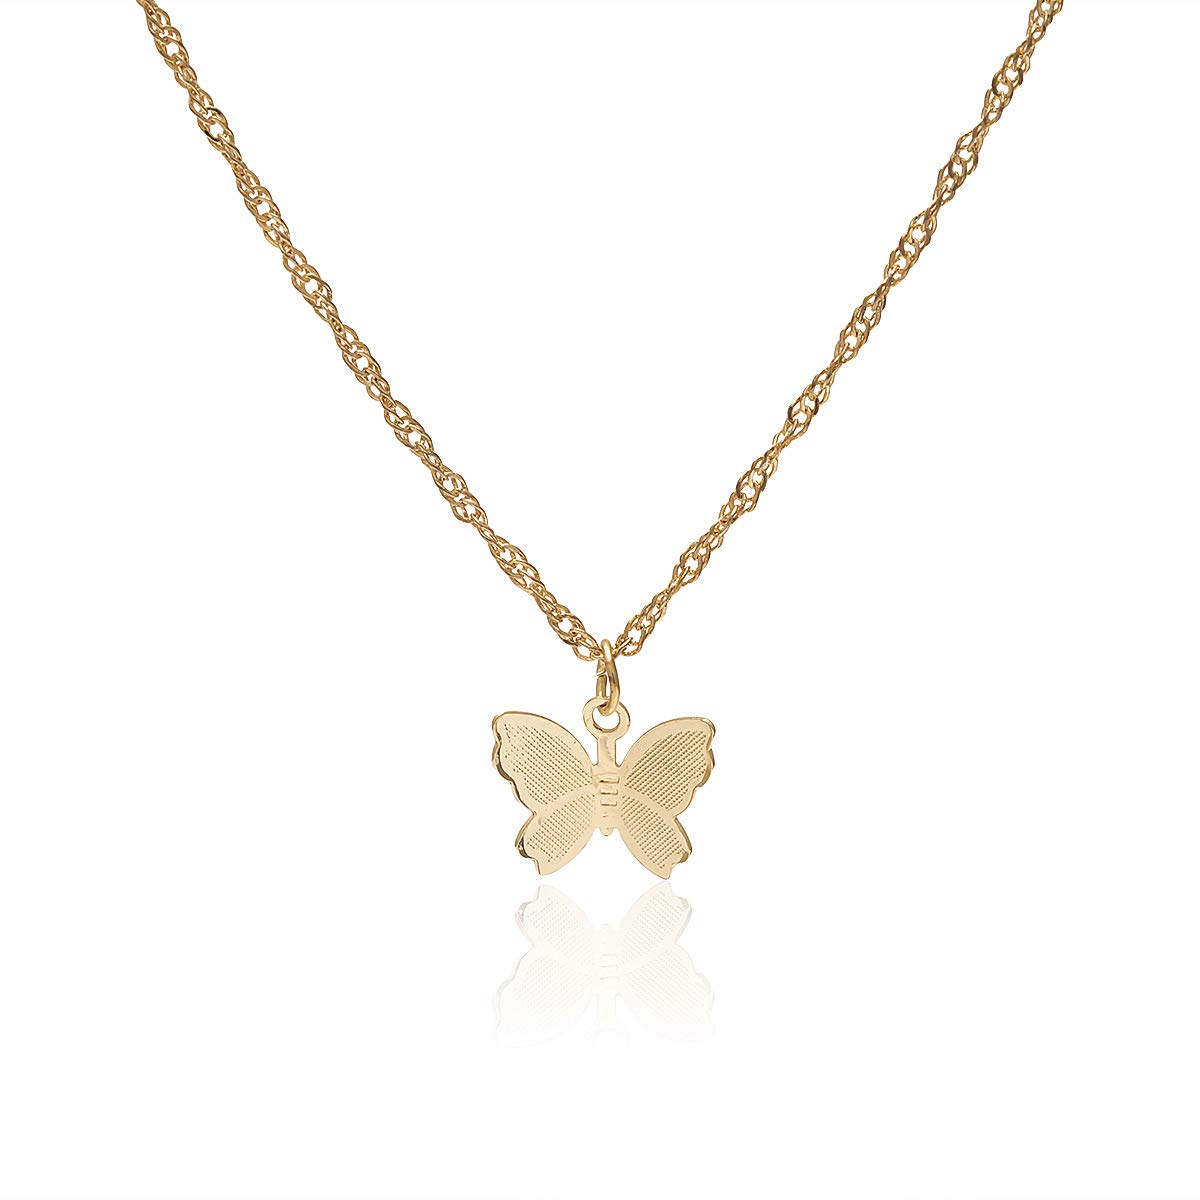 Konpicca Butterfly Necklace Y Pendant Simple Cute Necklaces Long Multilayer Chain Fashion Jewelry Women Girls Gift for Her